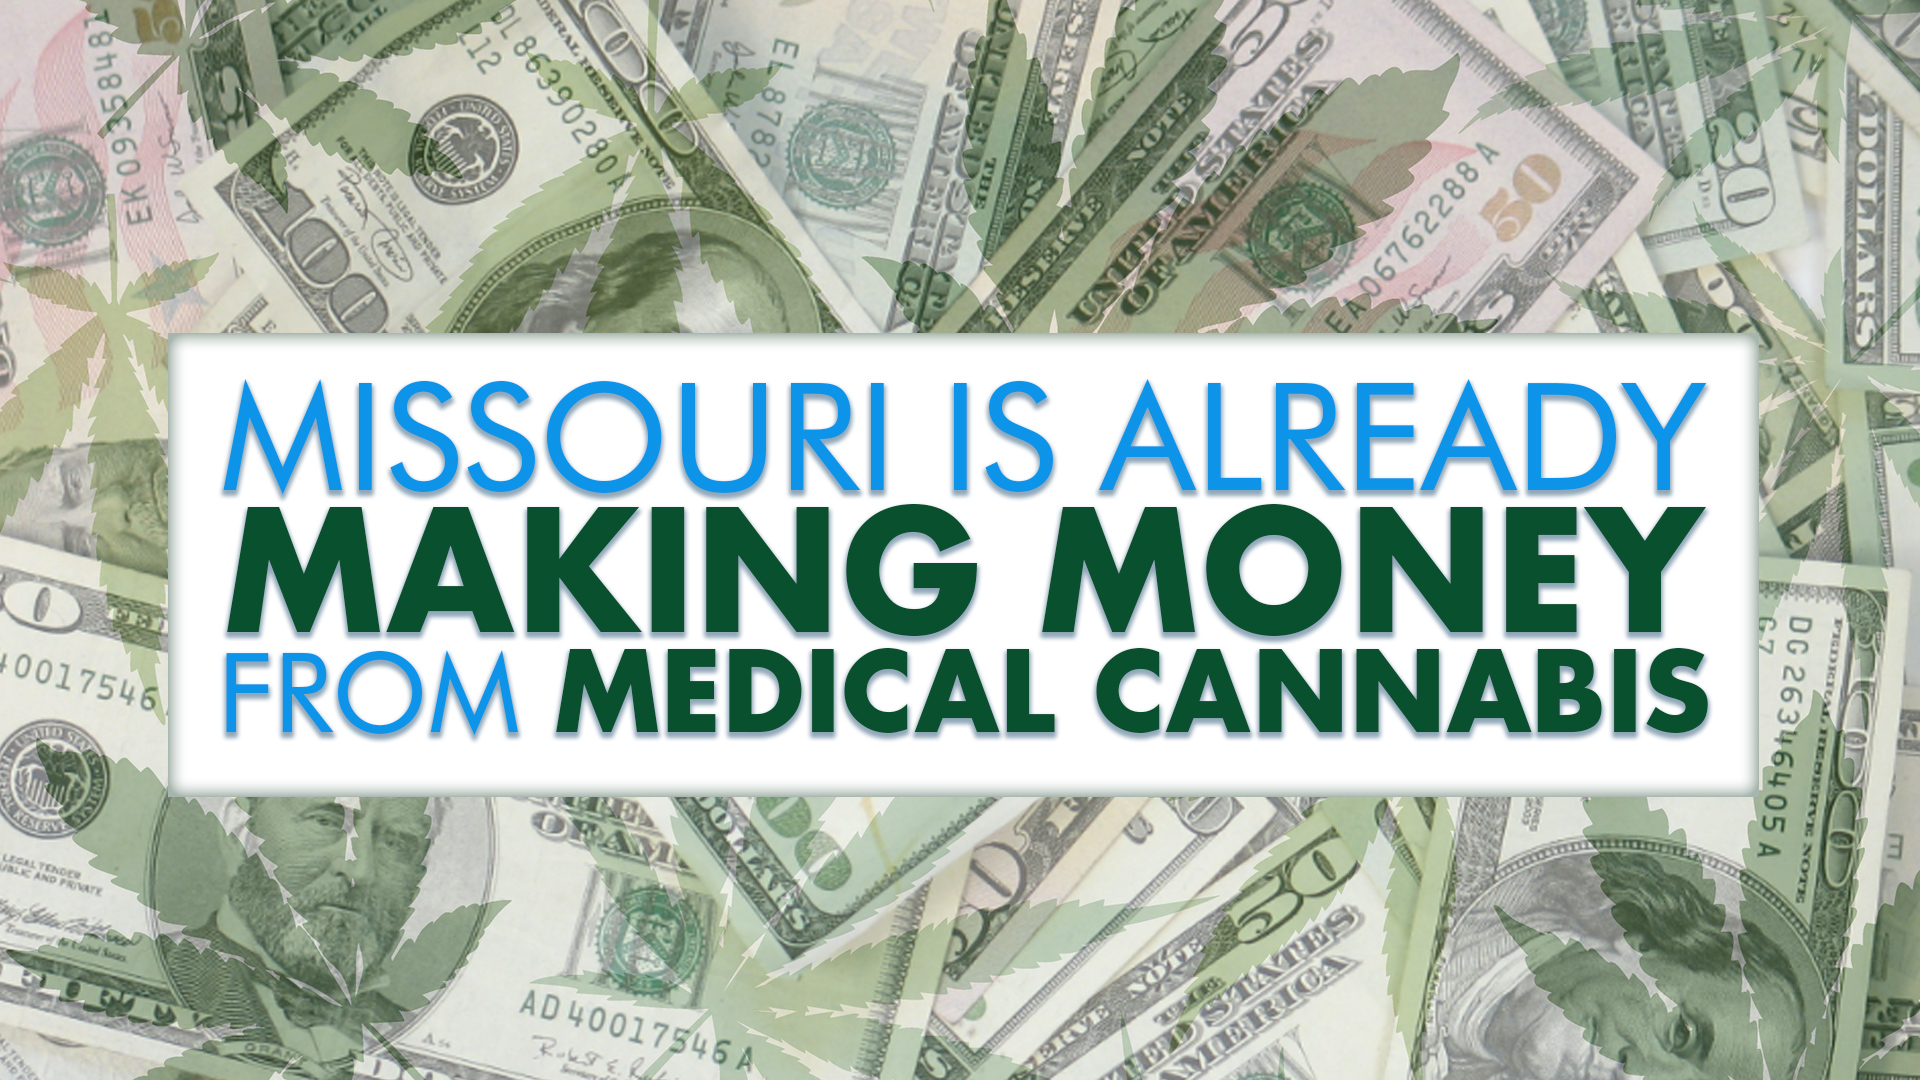 Making Money From Medical Cannabis